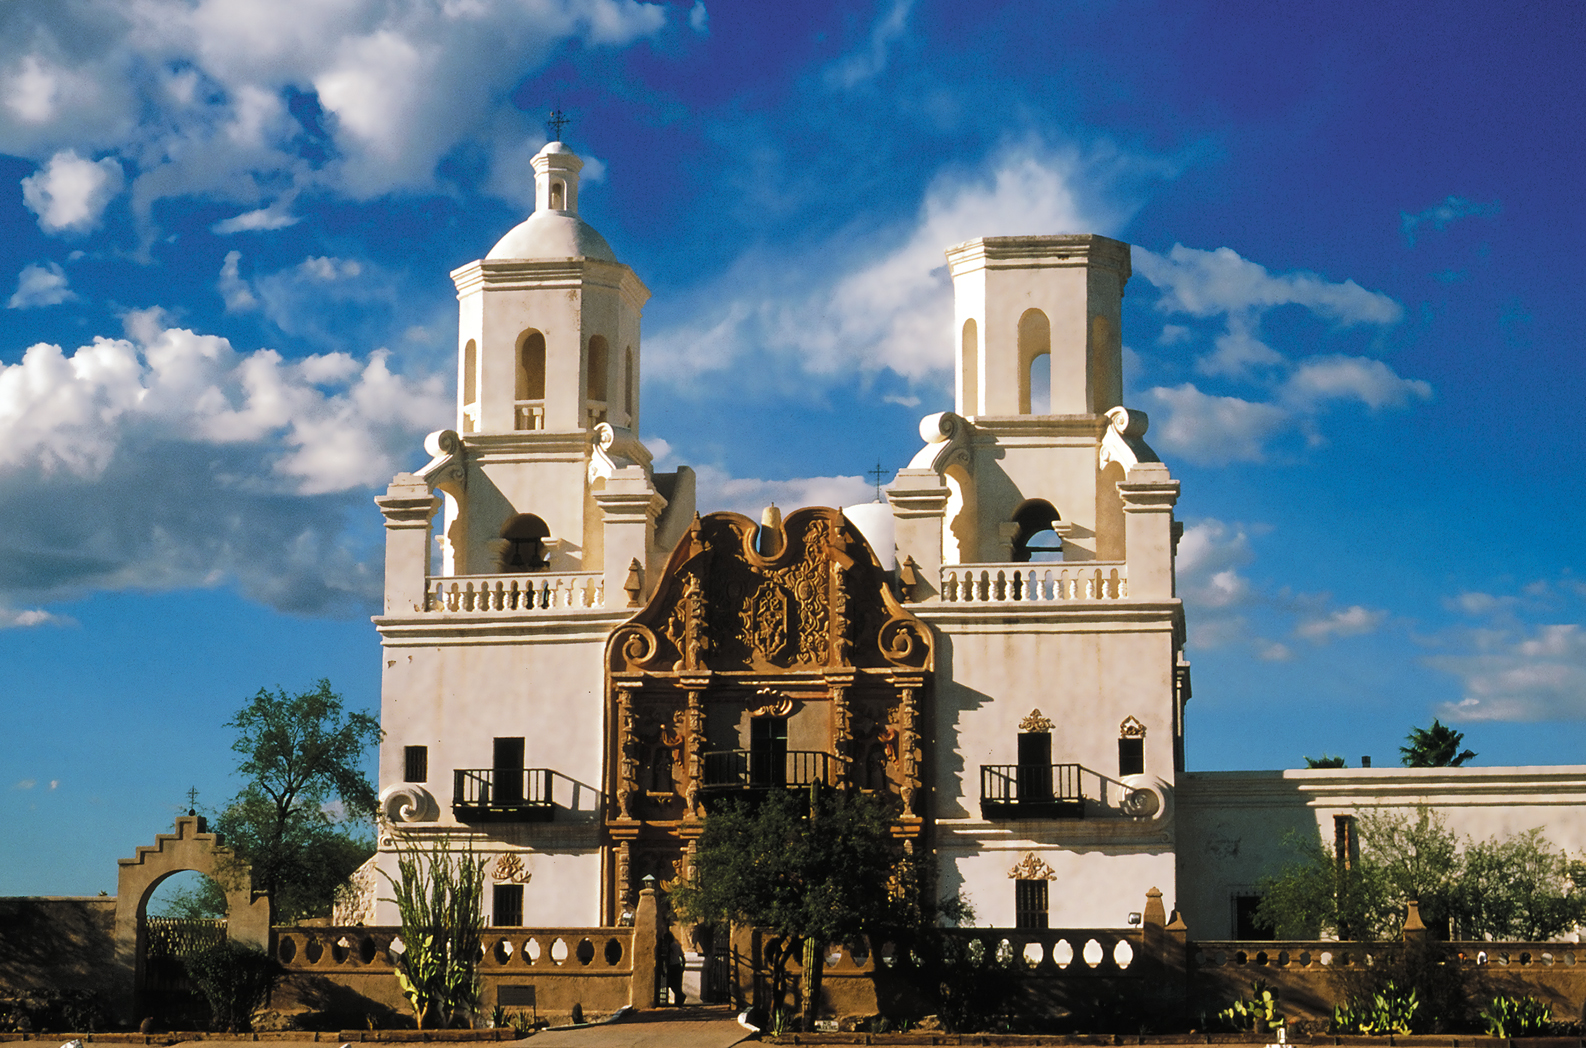 Mission San Xavier, courtesy of Visit Tucson